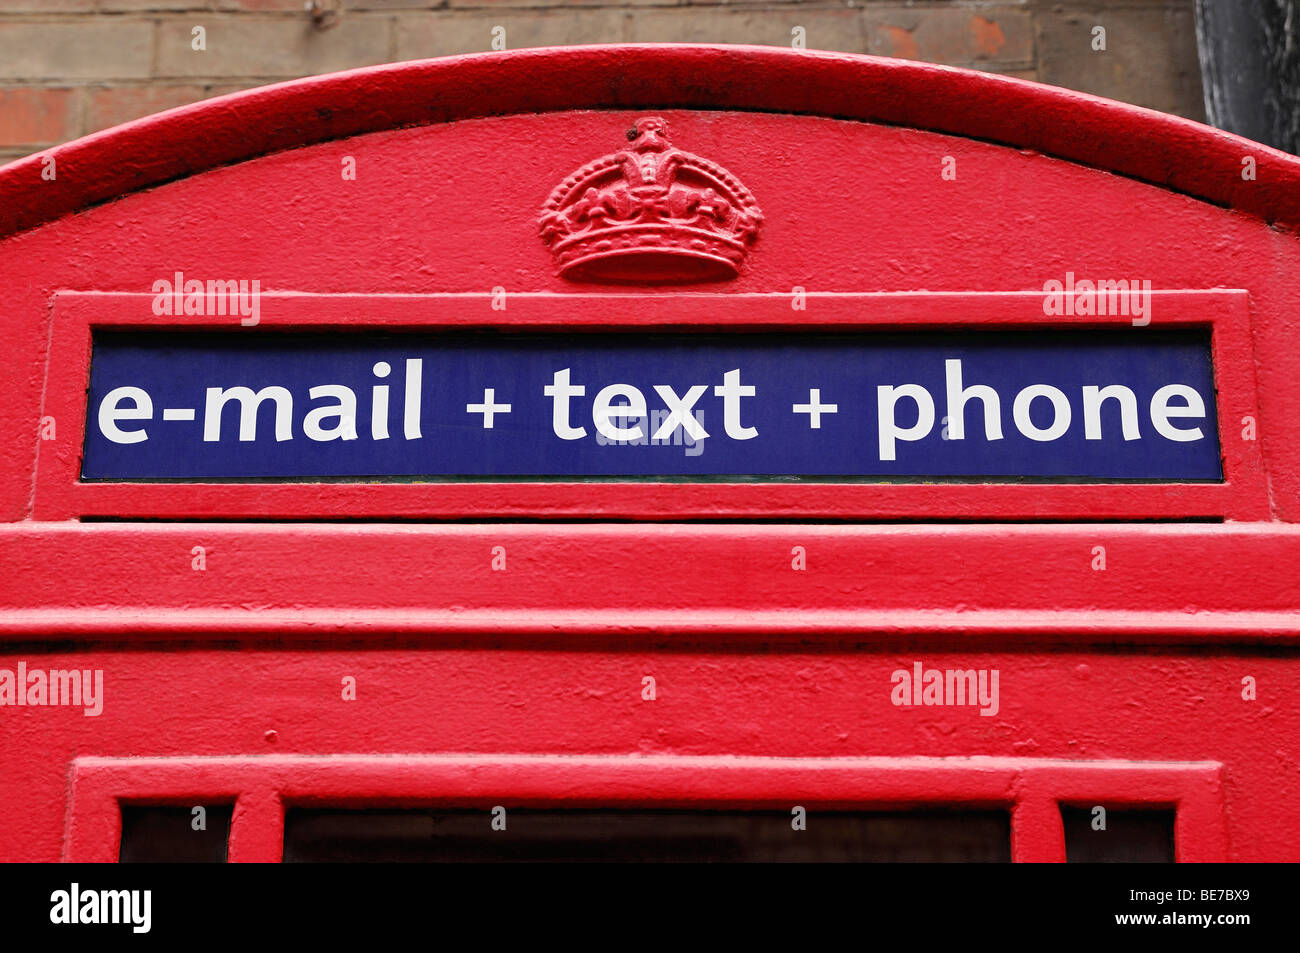 Traditional Red Telephone Box Offering Email, Text and Phone Services. Close Up, United Kingdom. - Stock Image